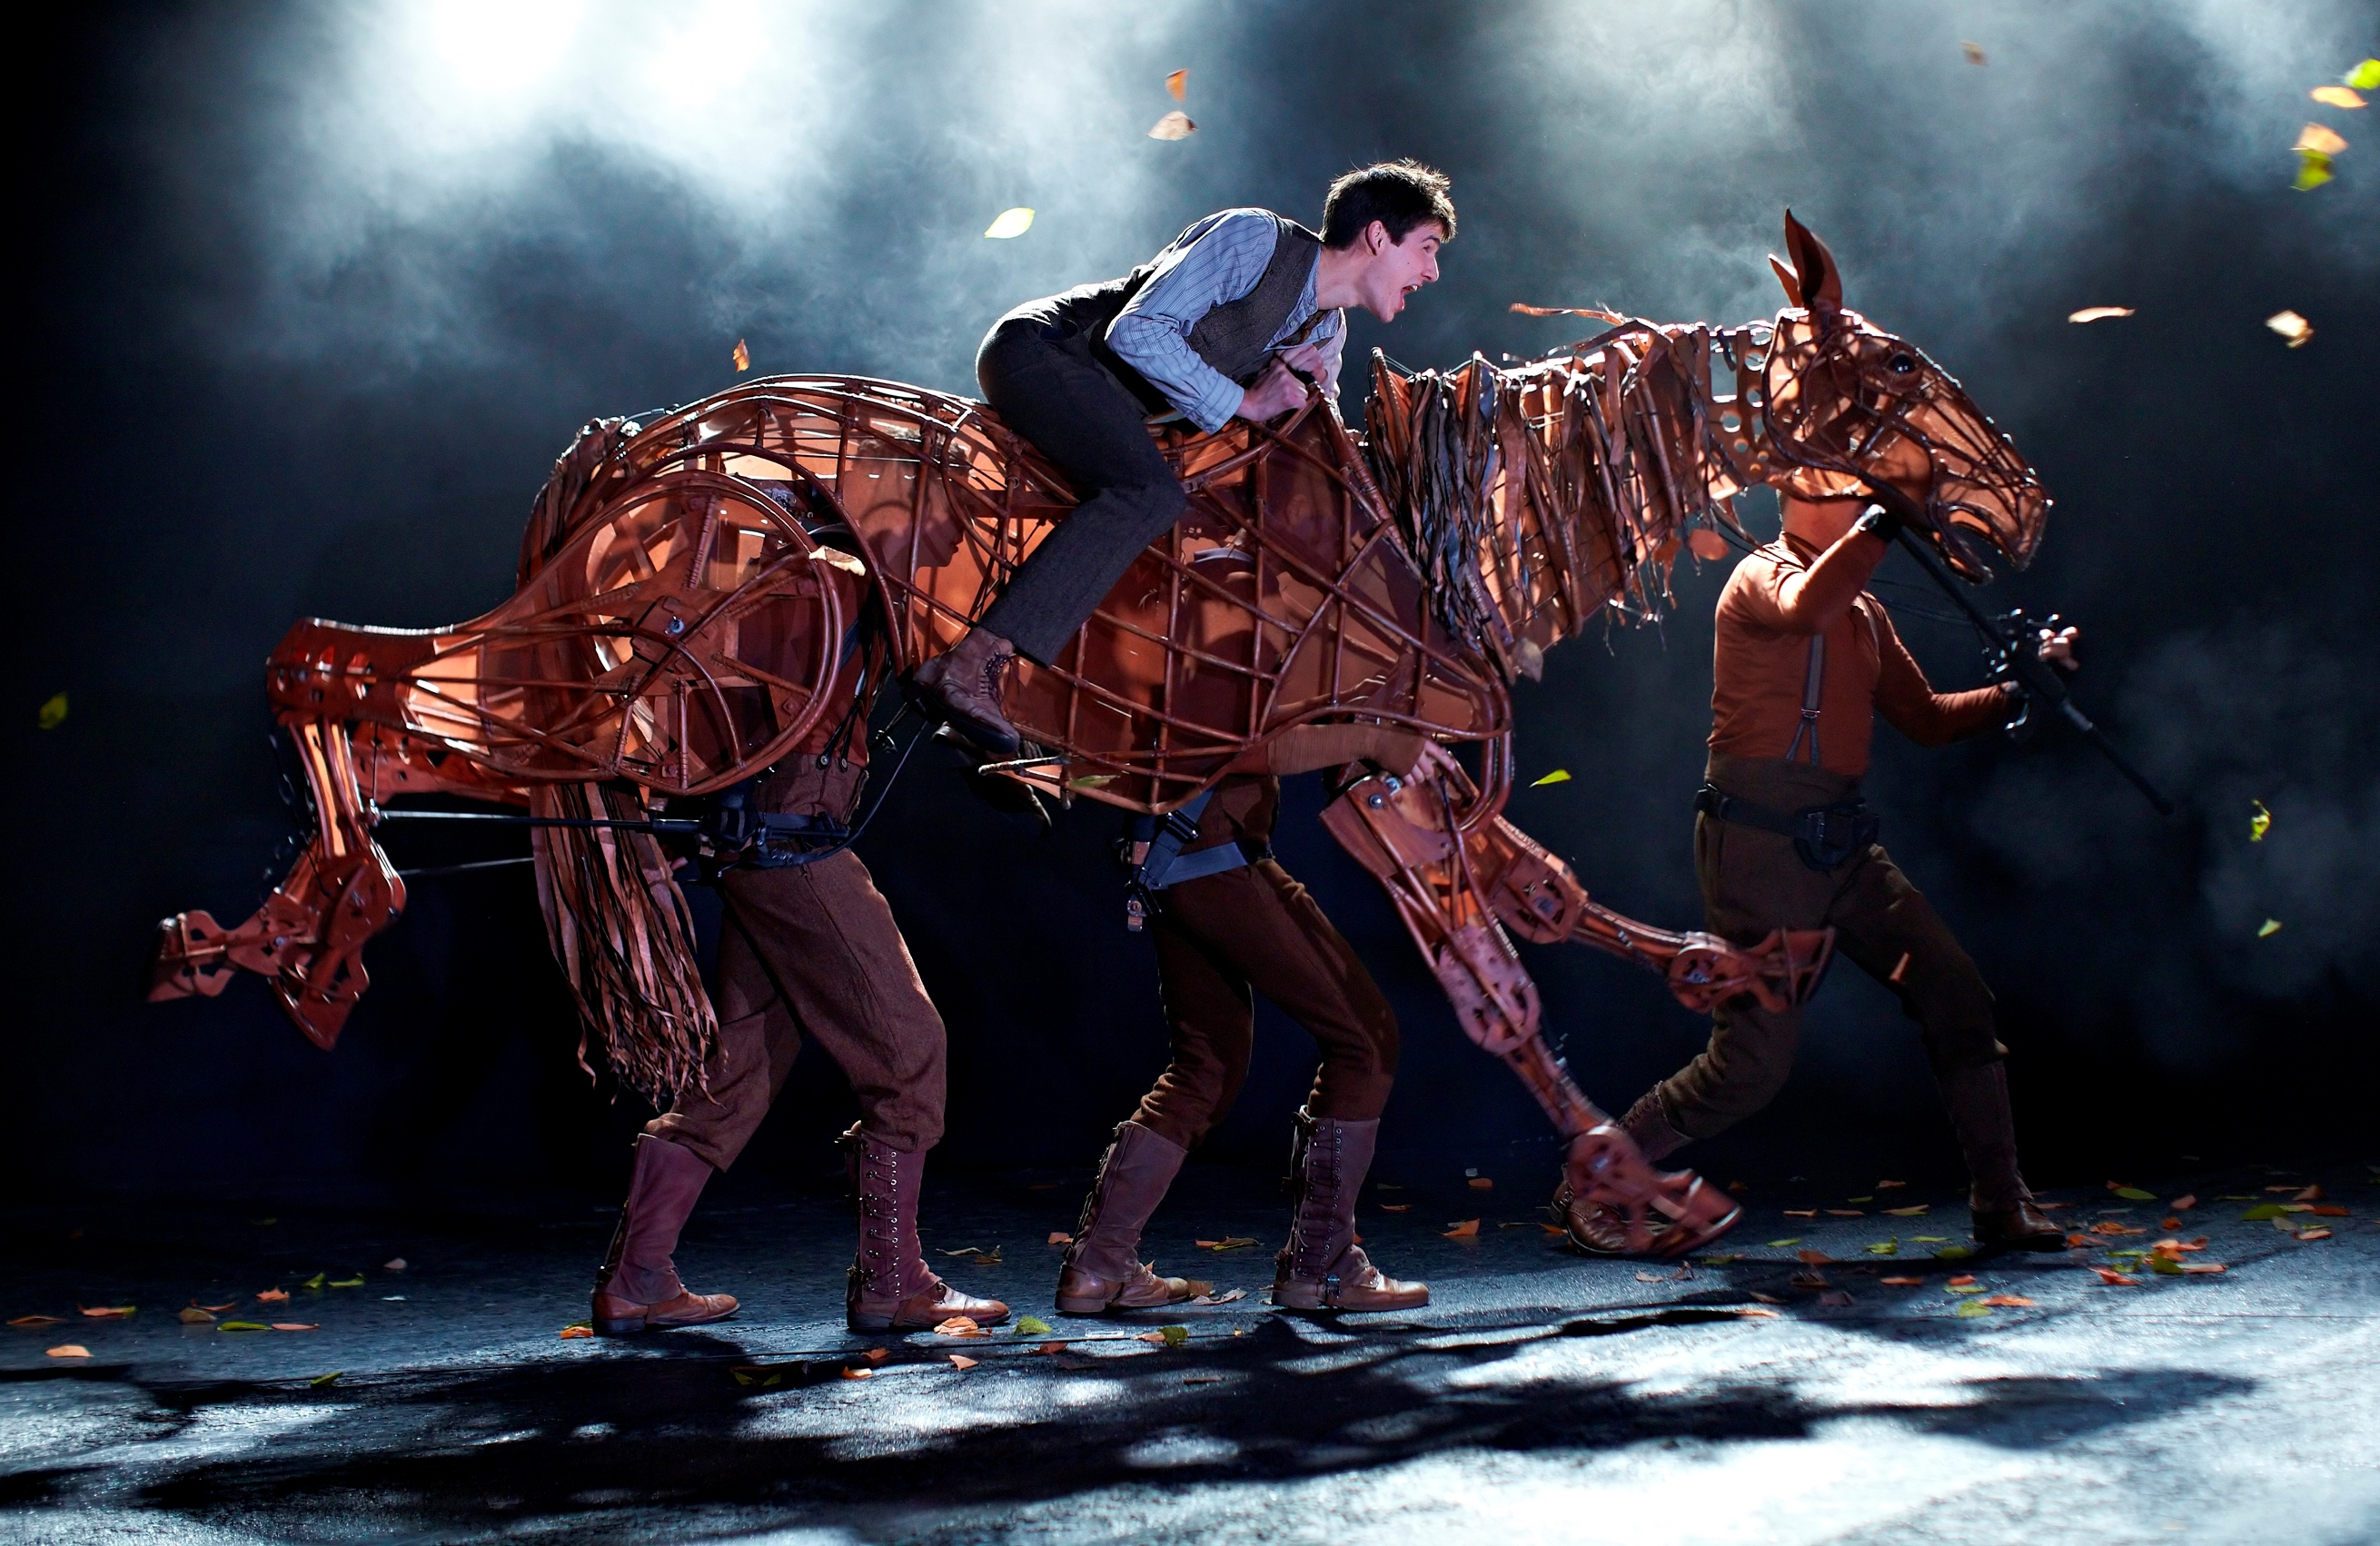 The magic behind War Horse's spectacular puppetry